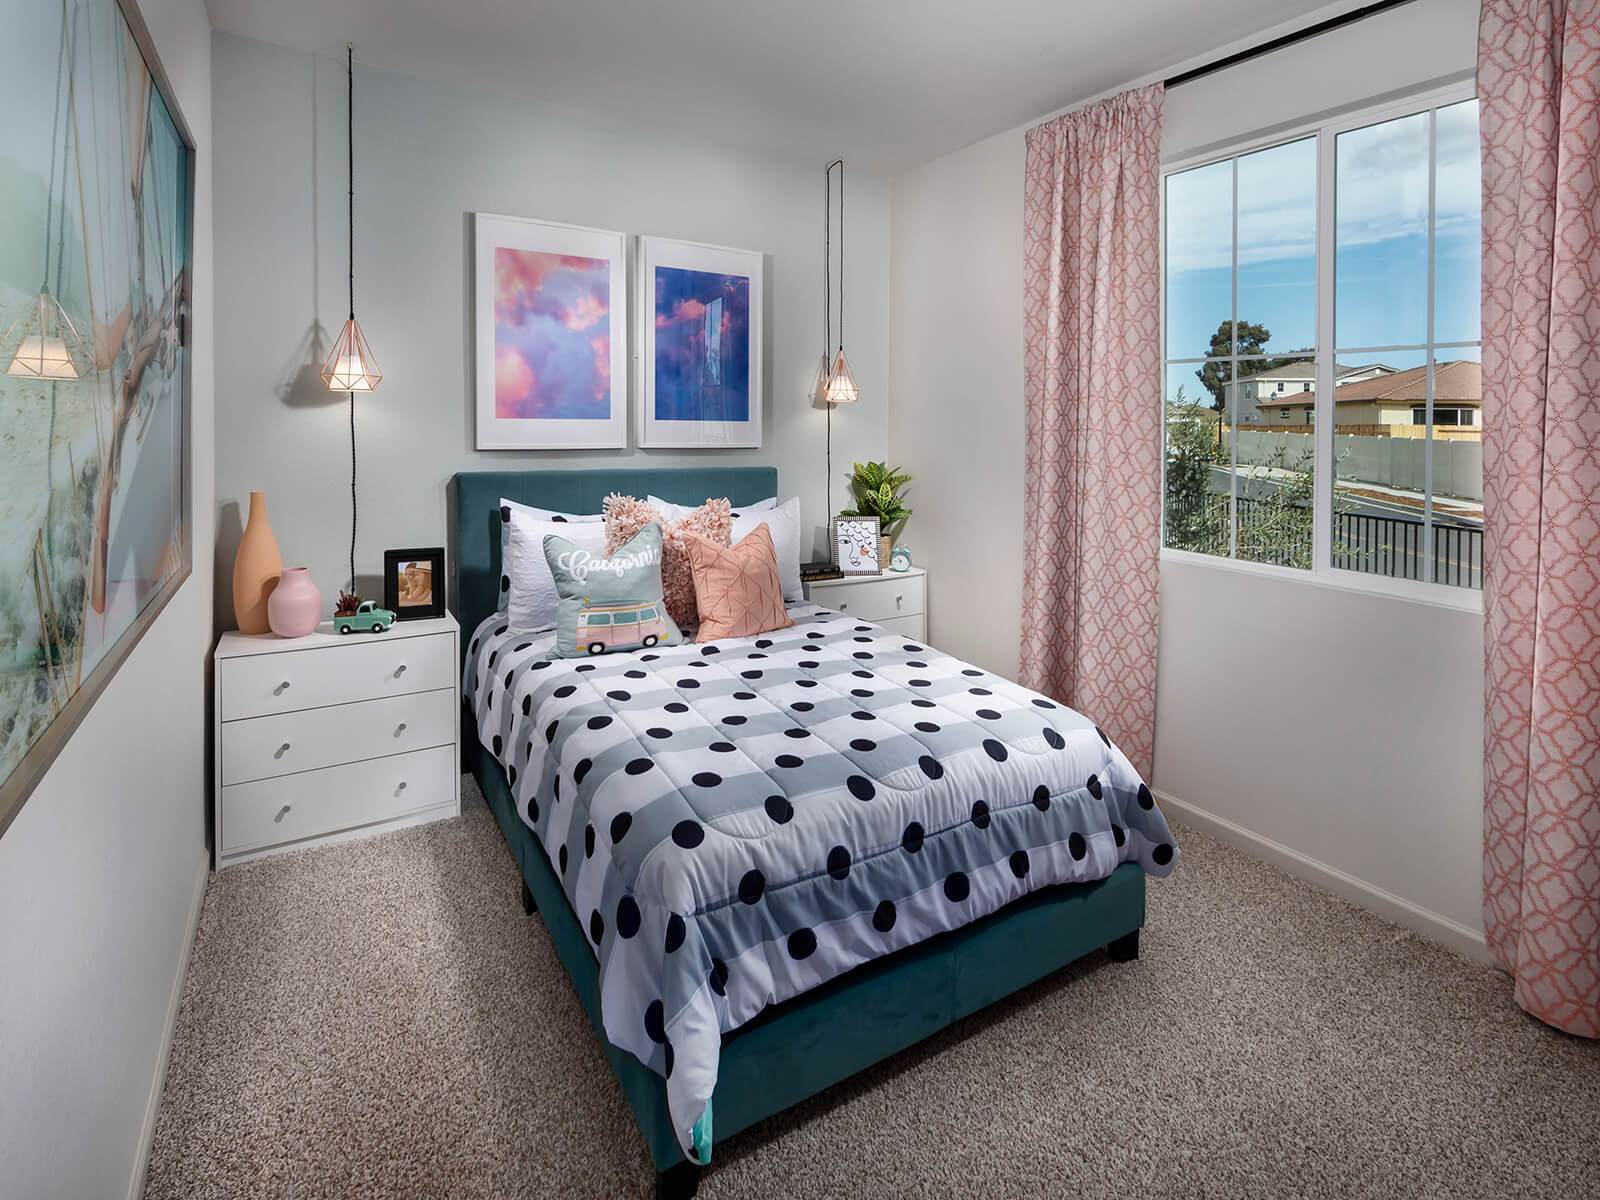 Bedroom featured in the Residence 1 By Meritage Homes in Oakland-Alameda, CA